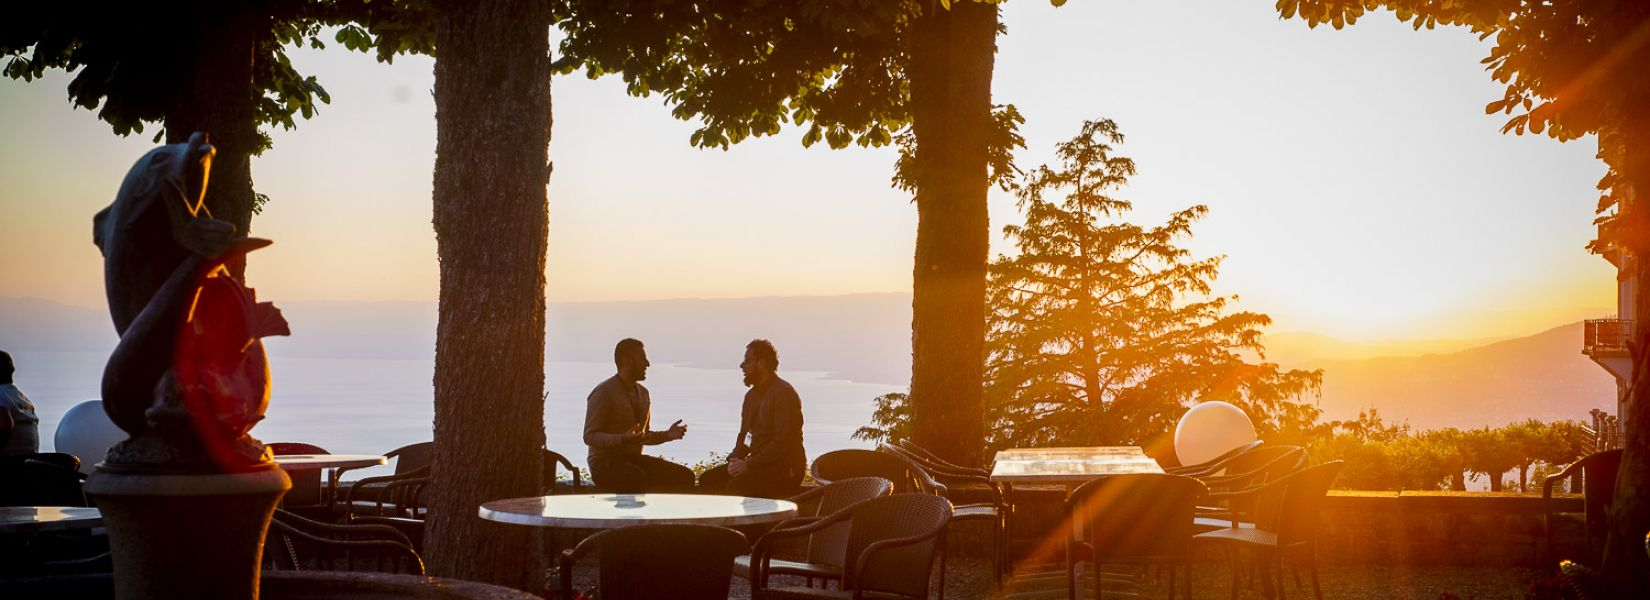 Caux Palace Terrace Sunset TIP 2019